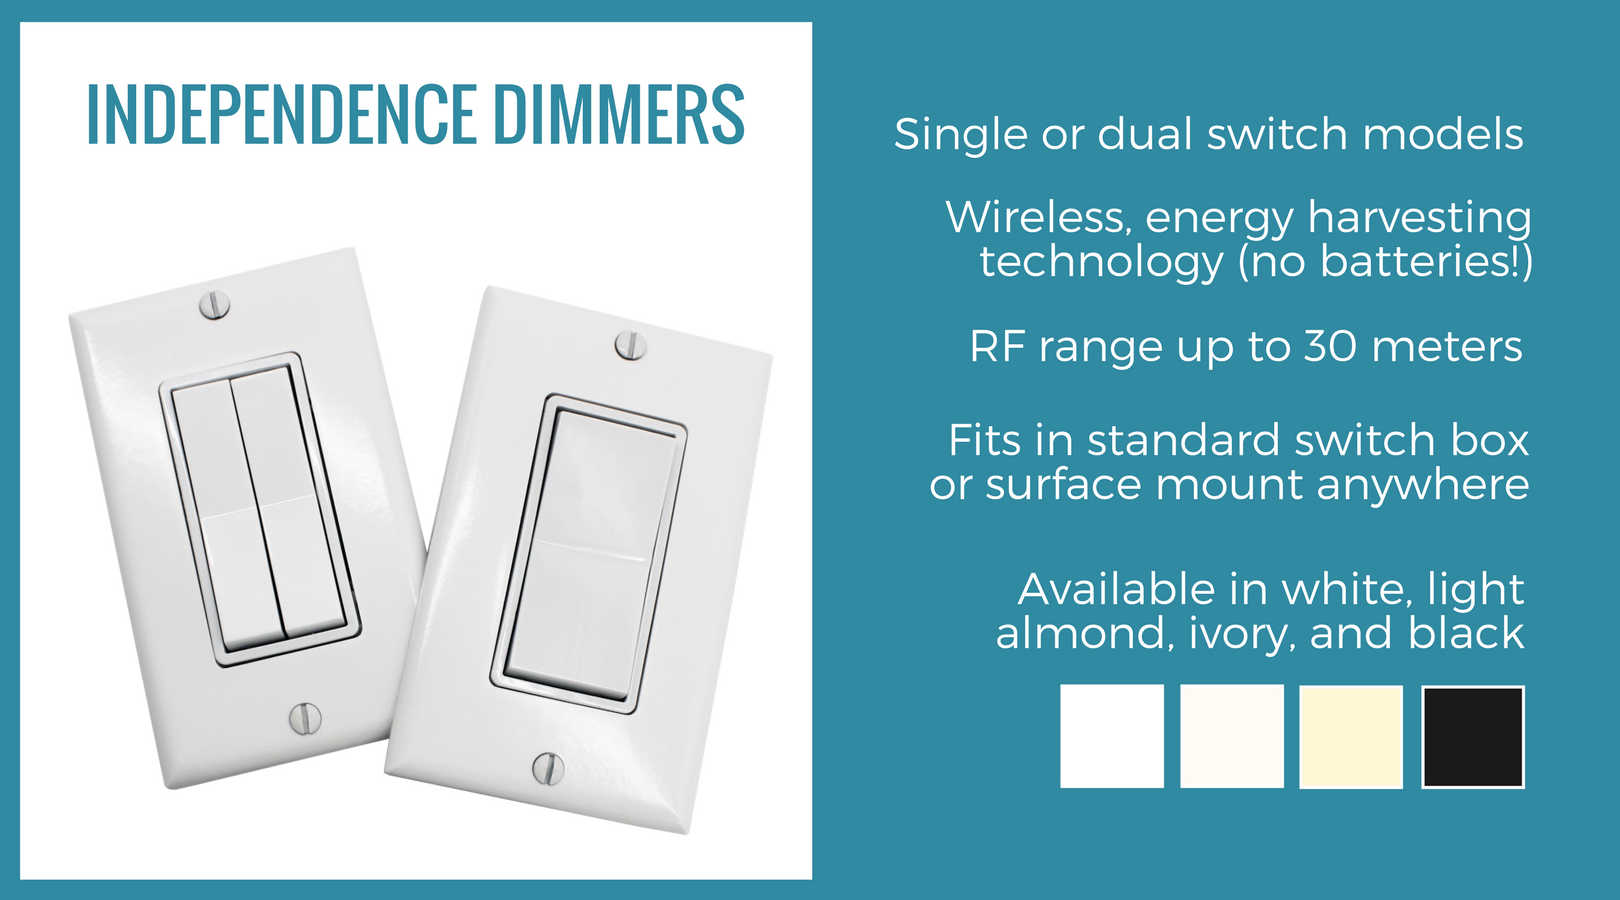 Independence Dimmer Switch 2 0 12v Or 24v Flex Inspired Led Dimmer Dimmer Switch Energy Harvesting